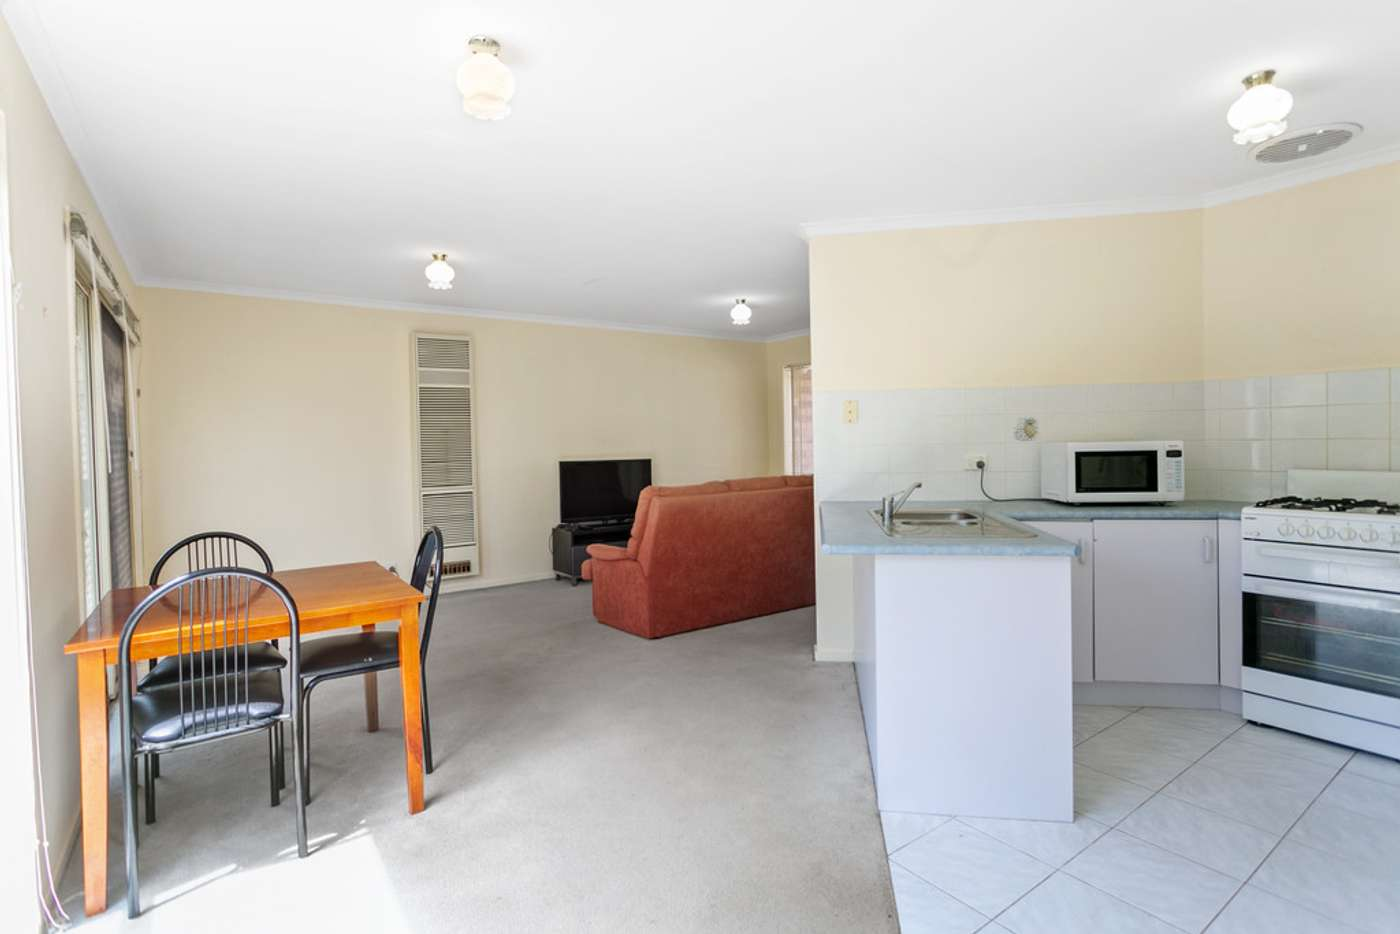 Sixth view of Homely unit listing, 5/91 Southgateway, Langwarrin VIC 3910